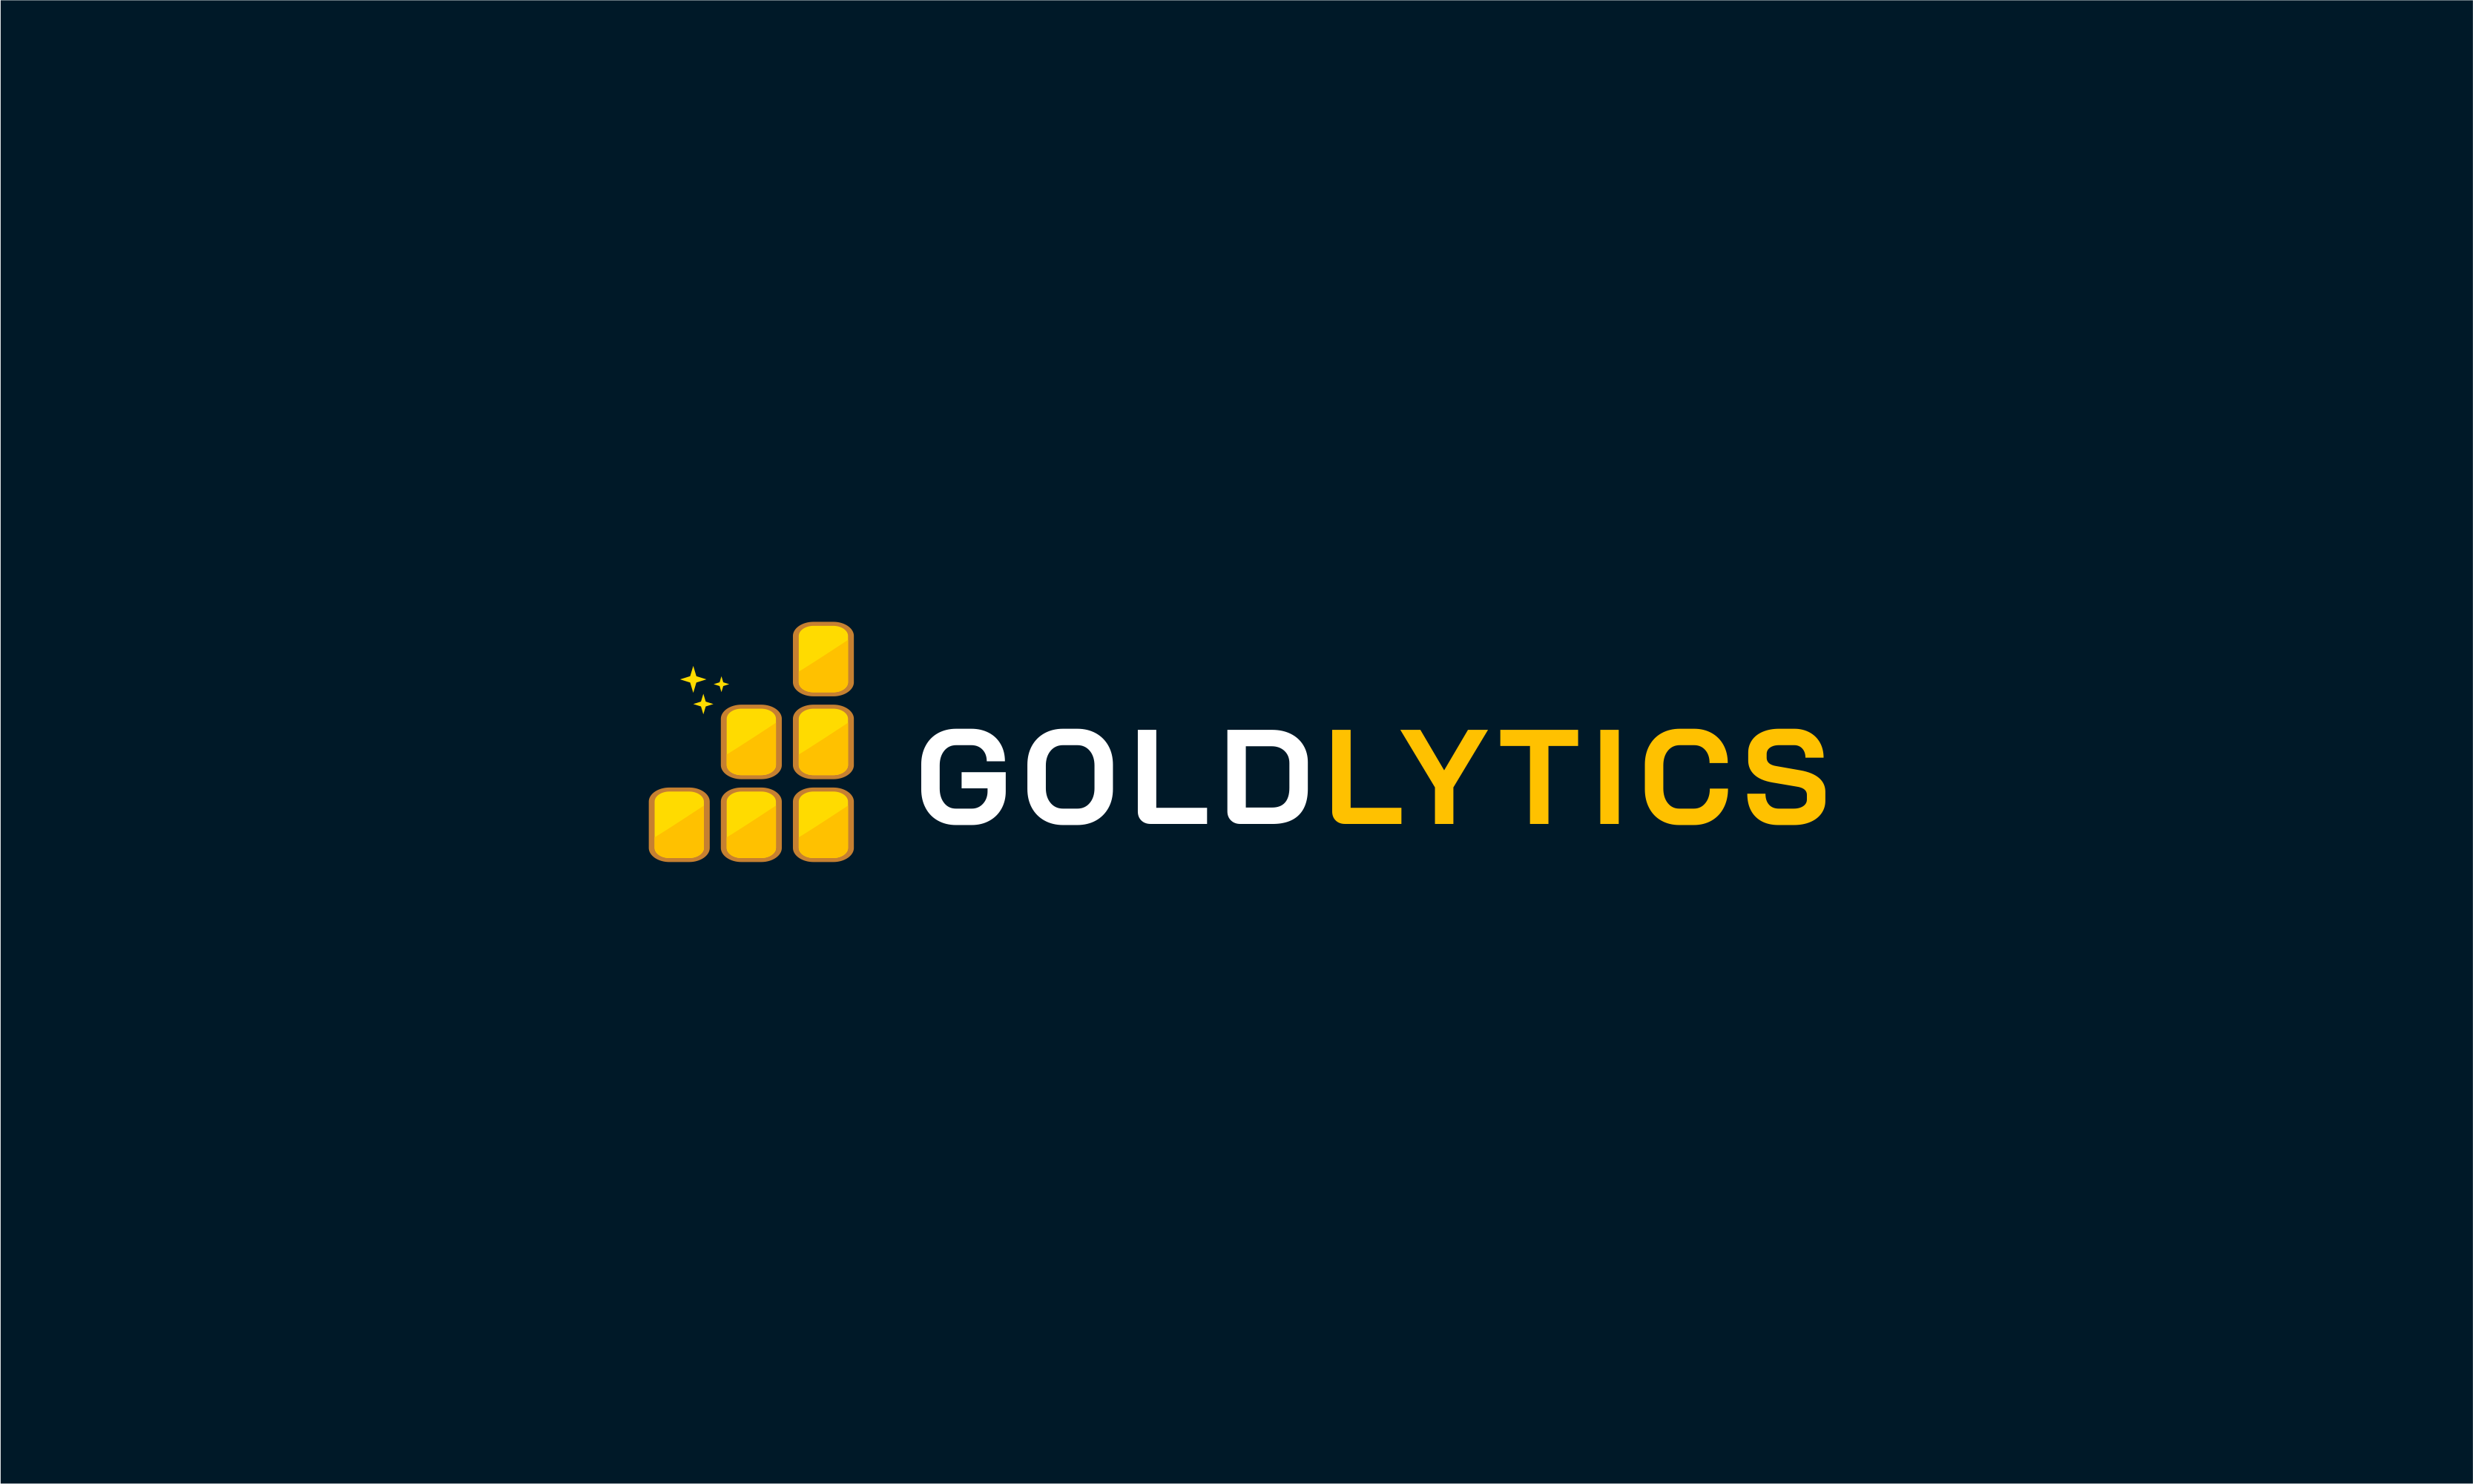 Goldlytics - Analytics business name for sale